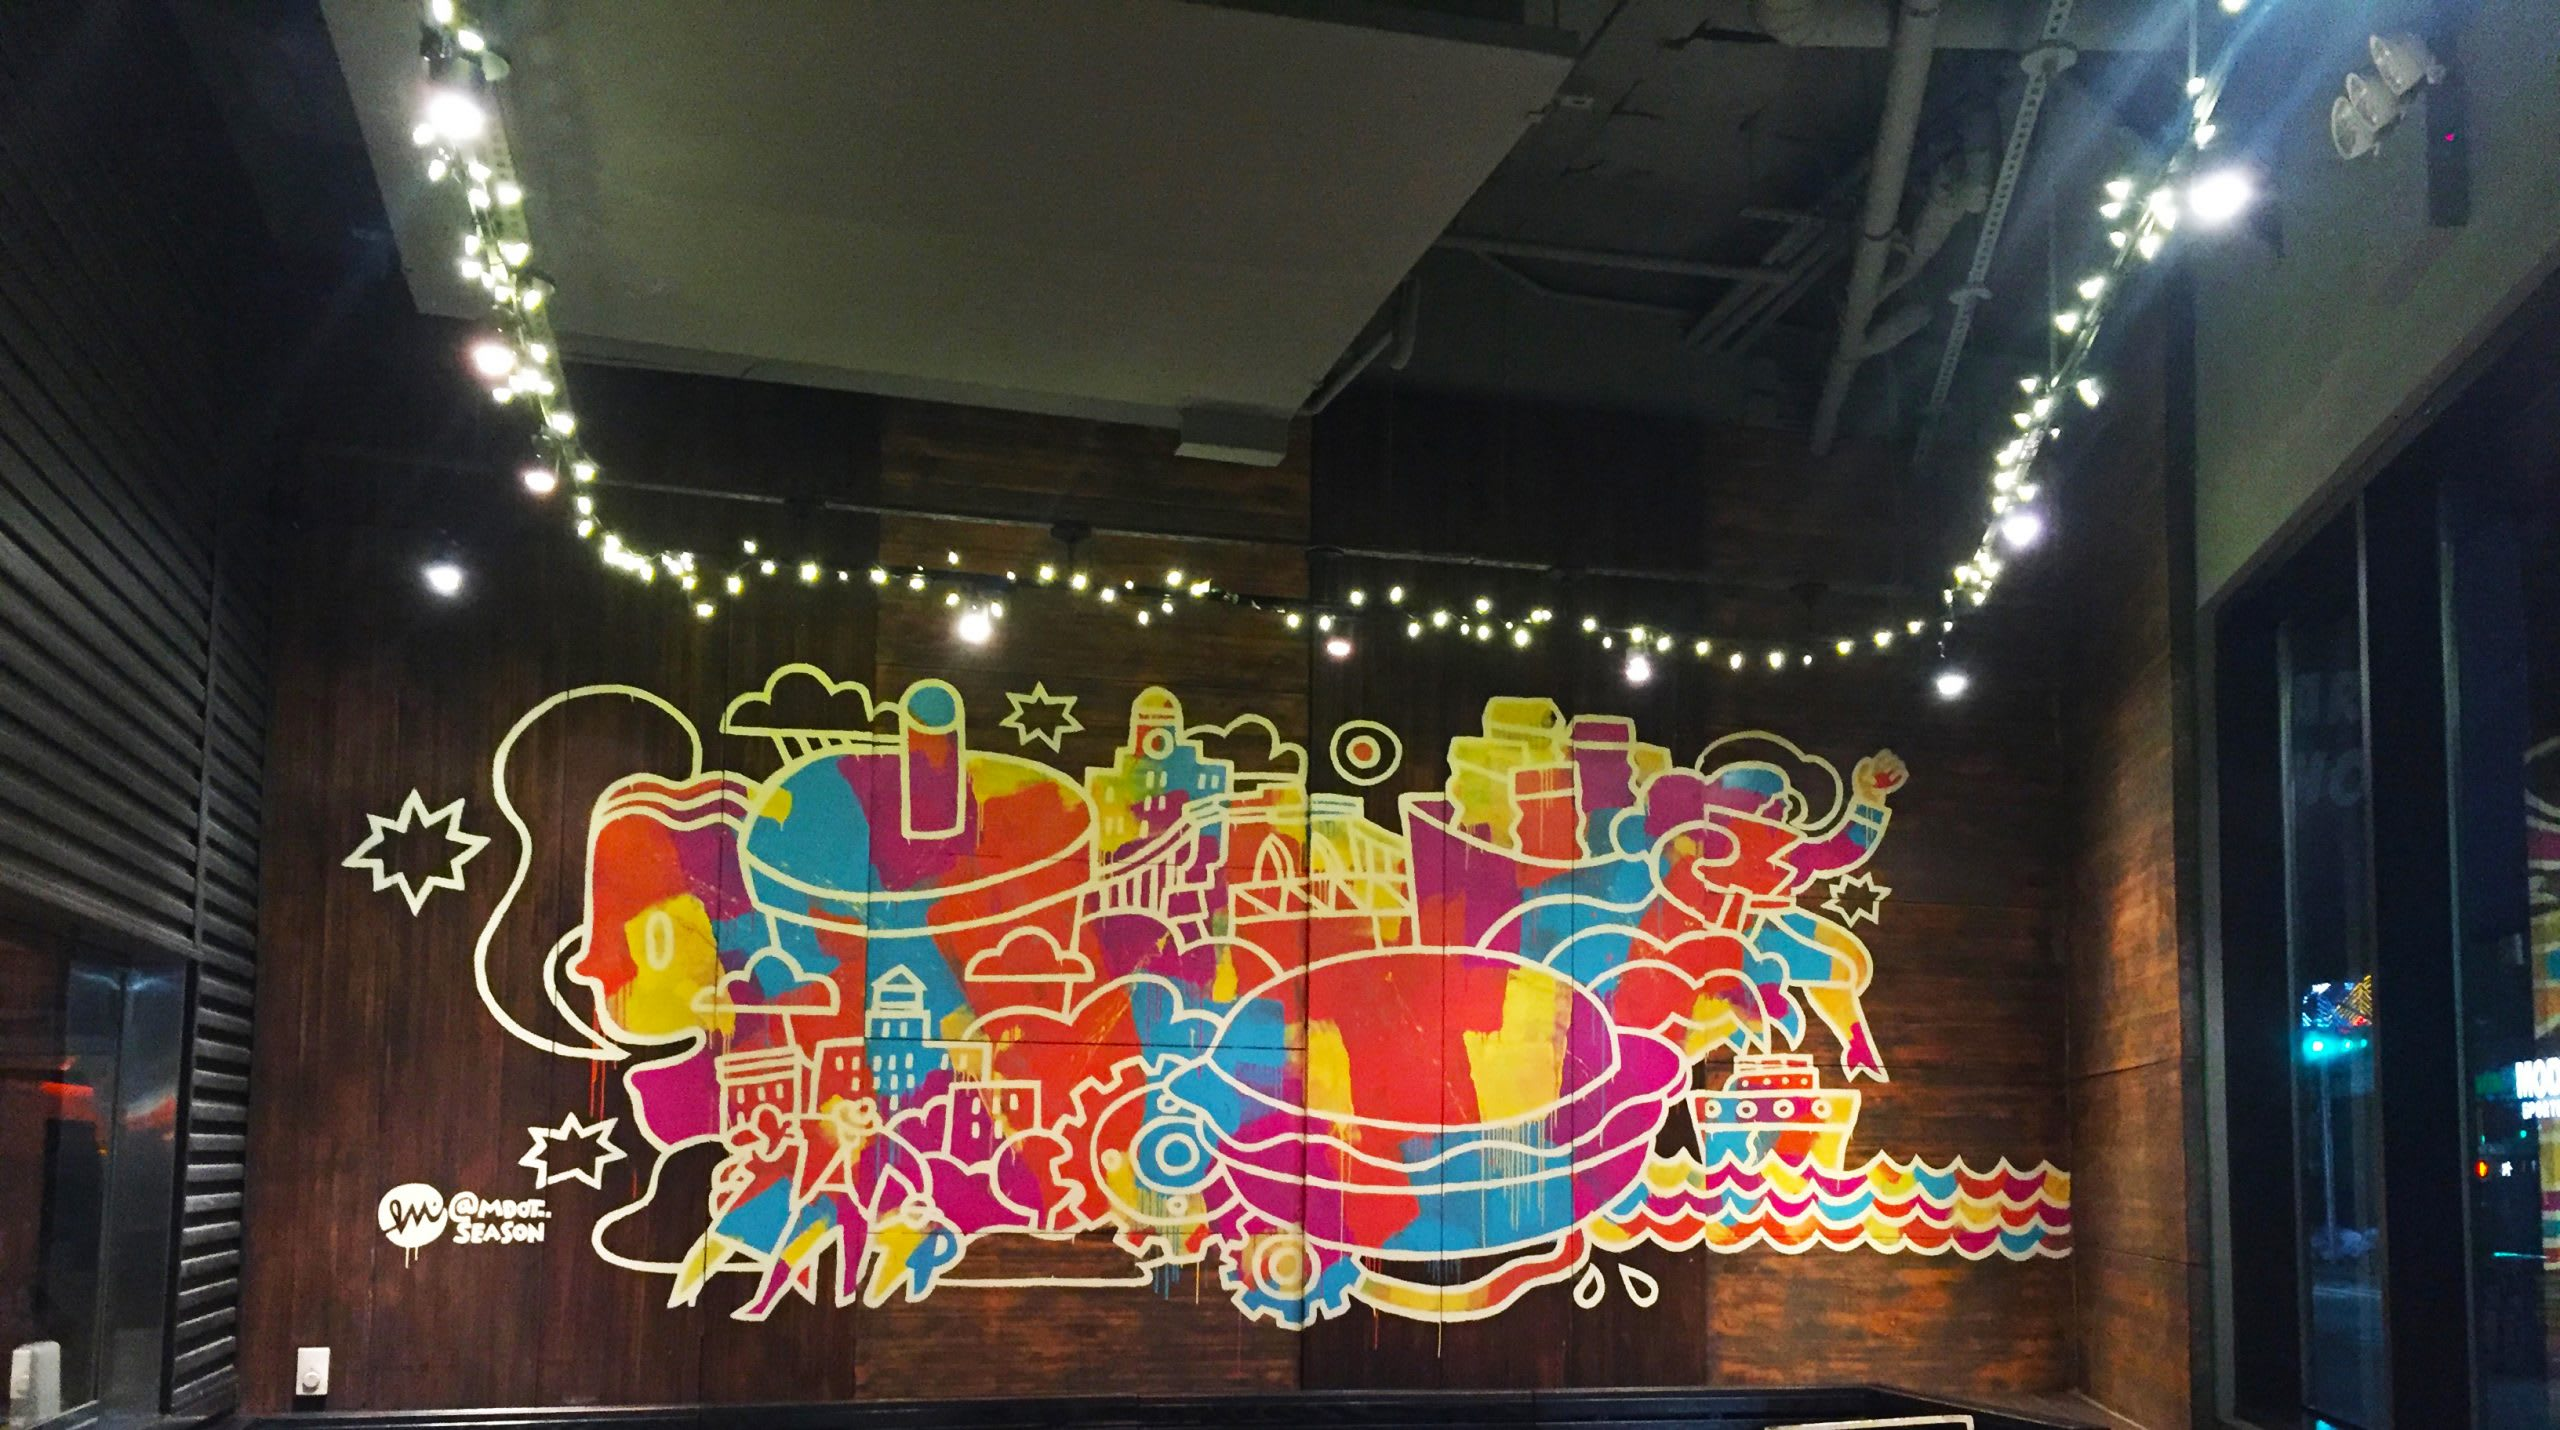 Shake Shack Downtown Brooklyn Mural by Misha Tyutyunik